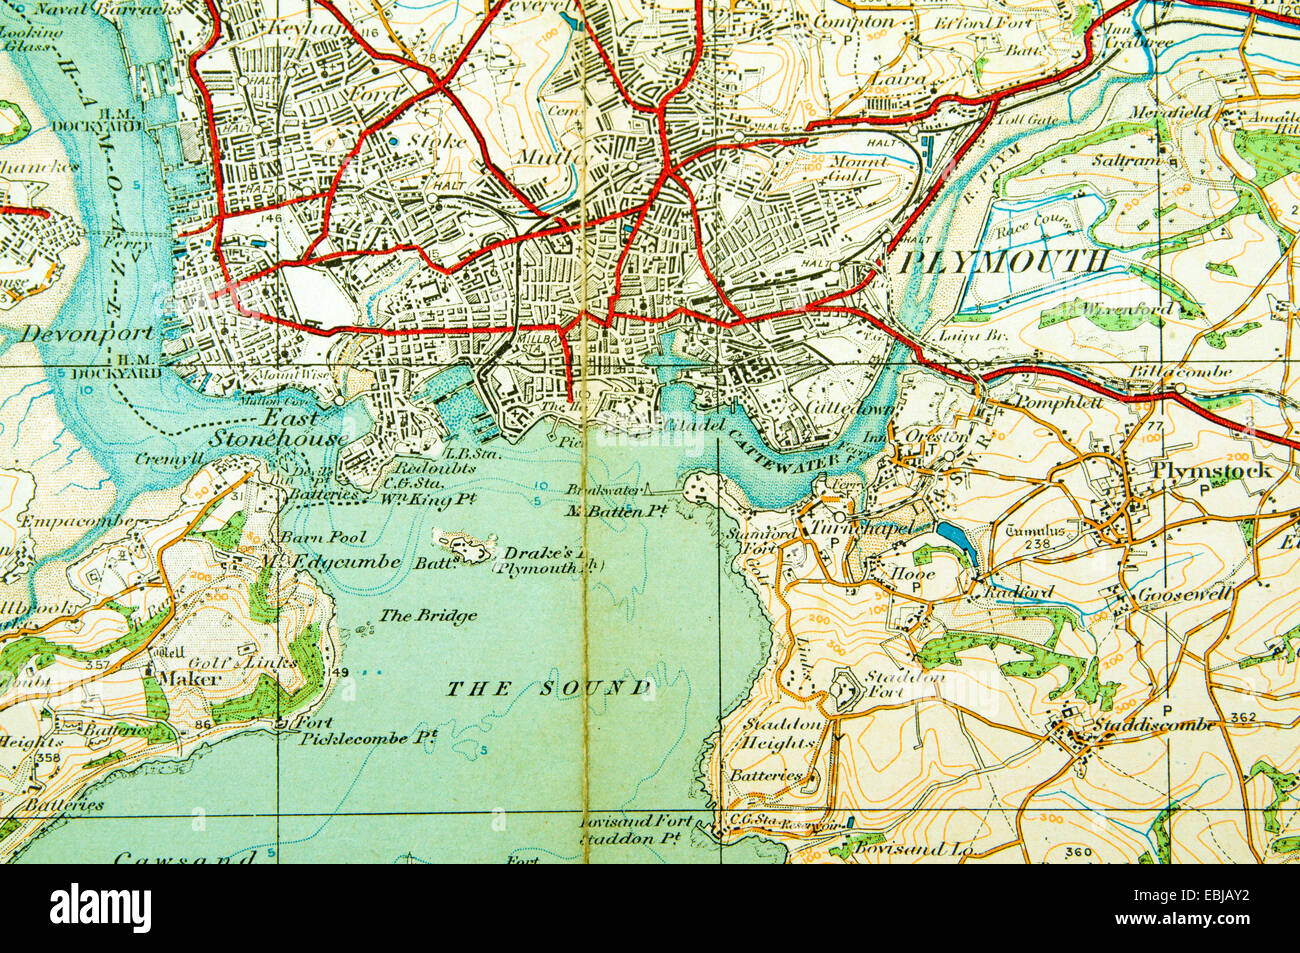 Historic Ordnance Survey Map Of Plymouth England Stock Photo